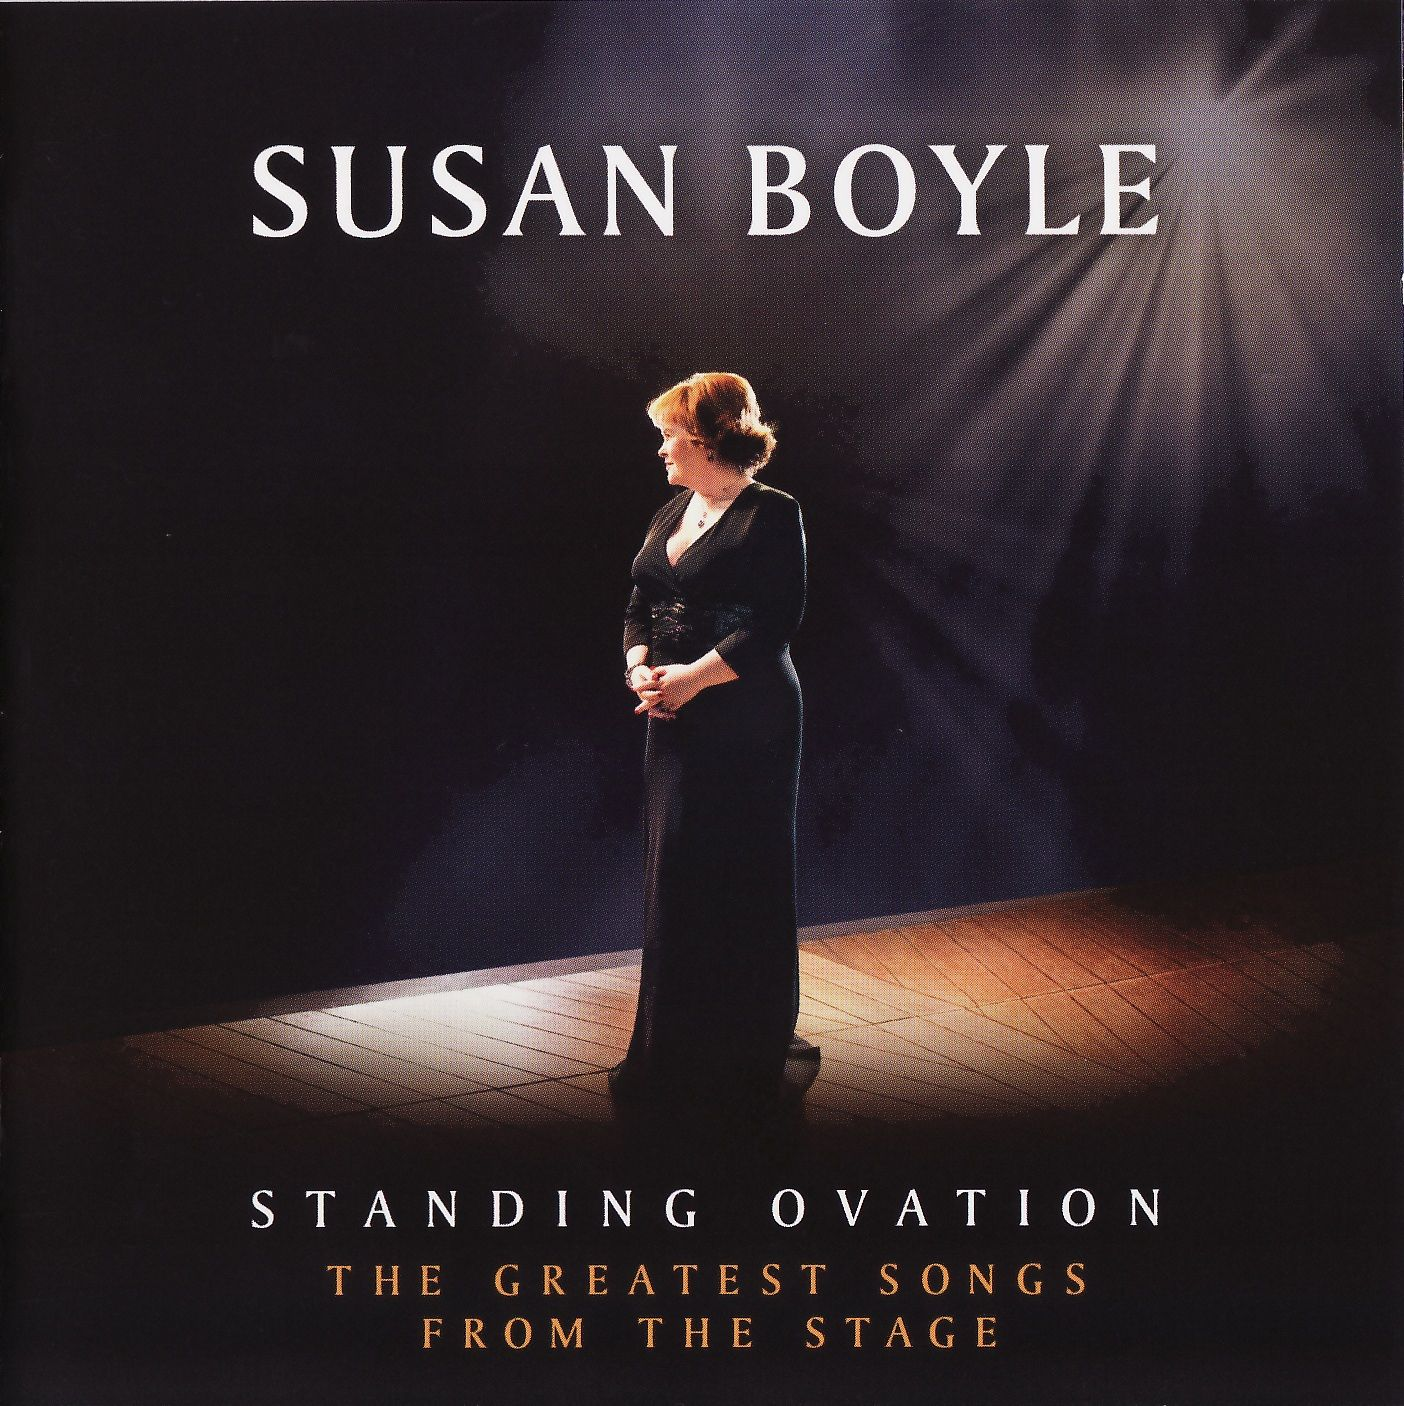 Susan Boyle - Standing Ovation: The Greatest Songs From The Stage album cover